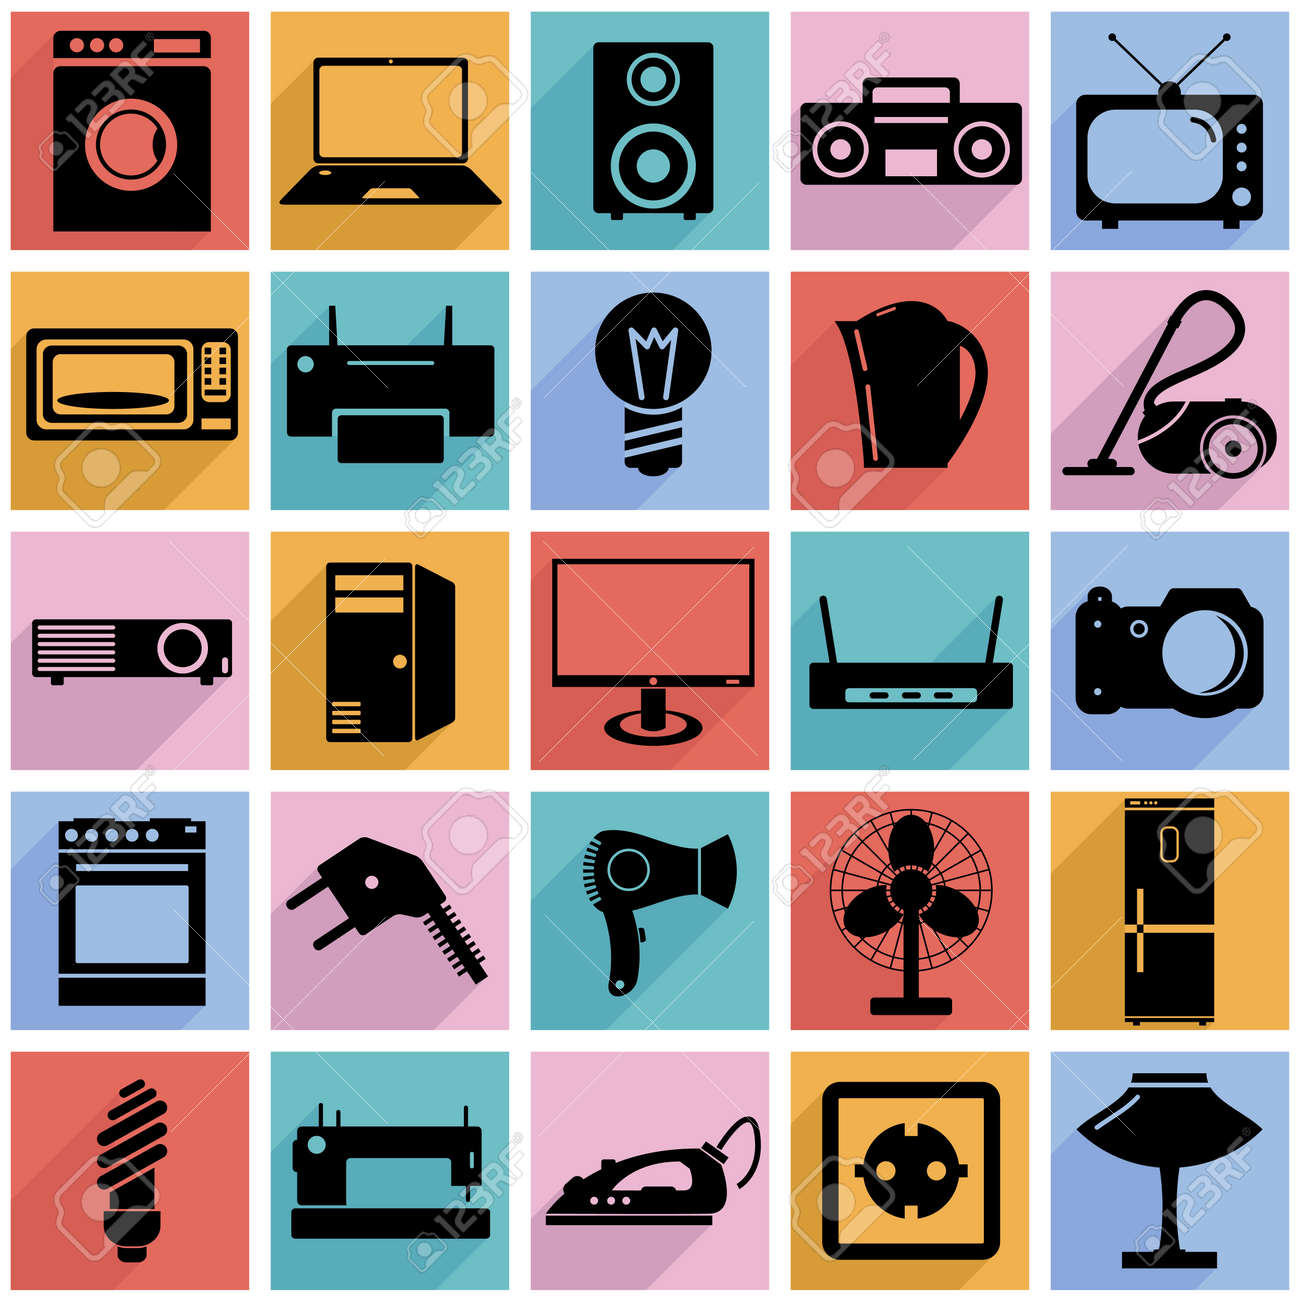 Electrical Devices Symbols Illustration Royalty Free Cliparts